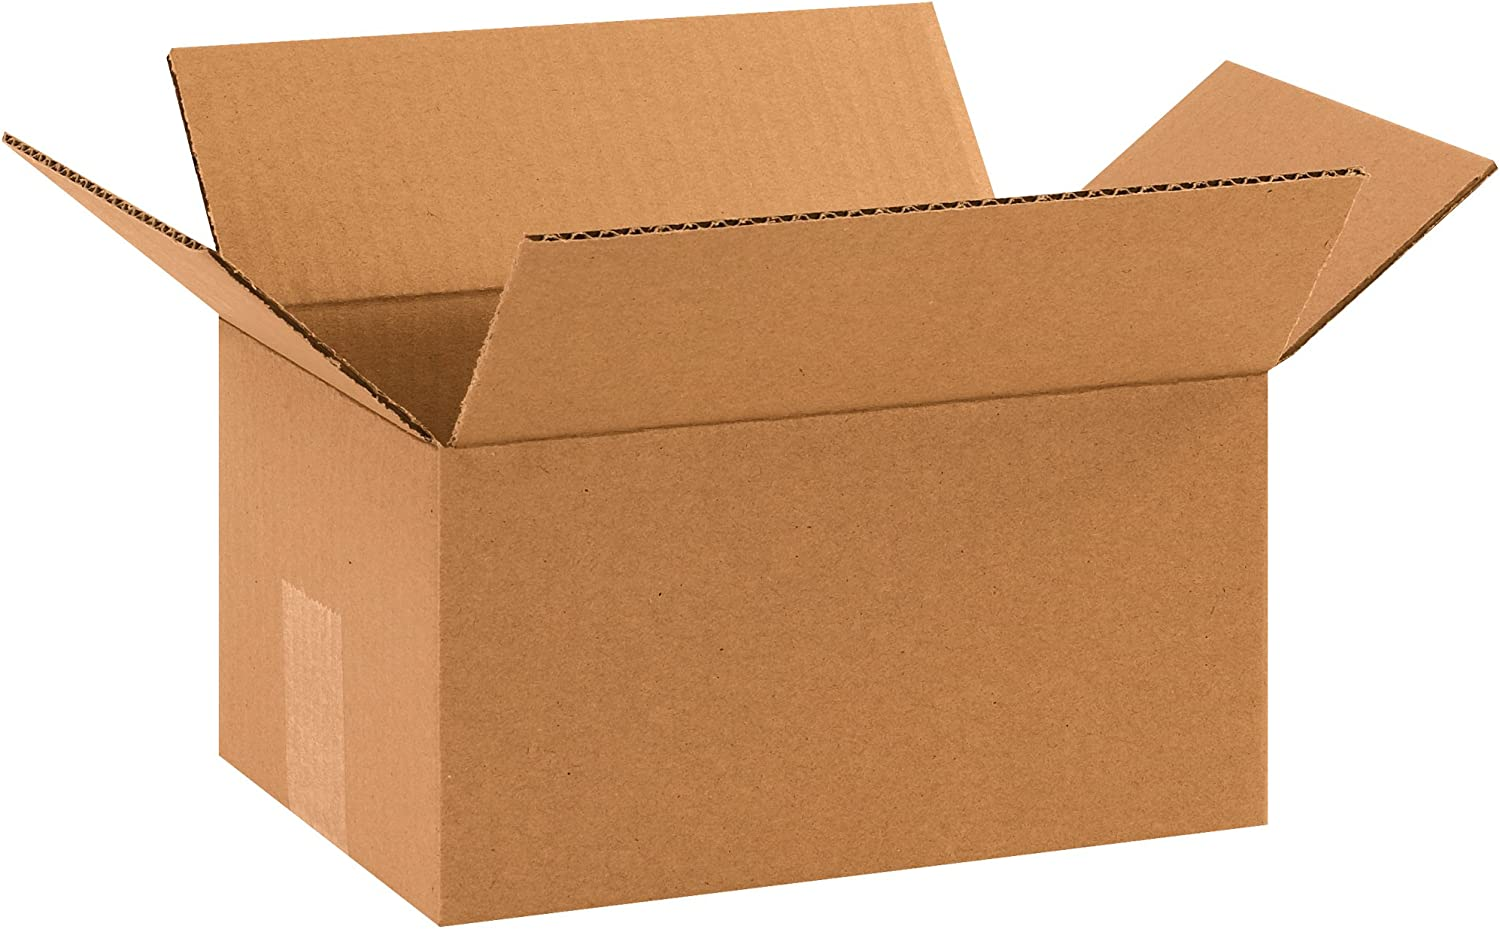 Partners Brand P1075 Corrugated Boxes Kraft 10L x 7W x 5H Pack of 25